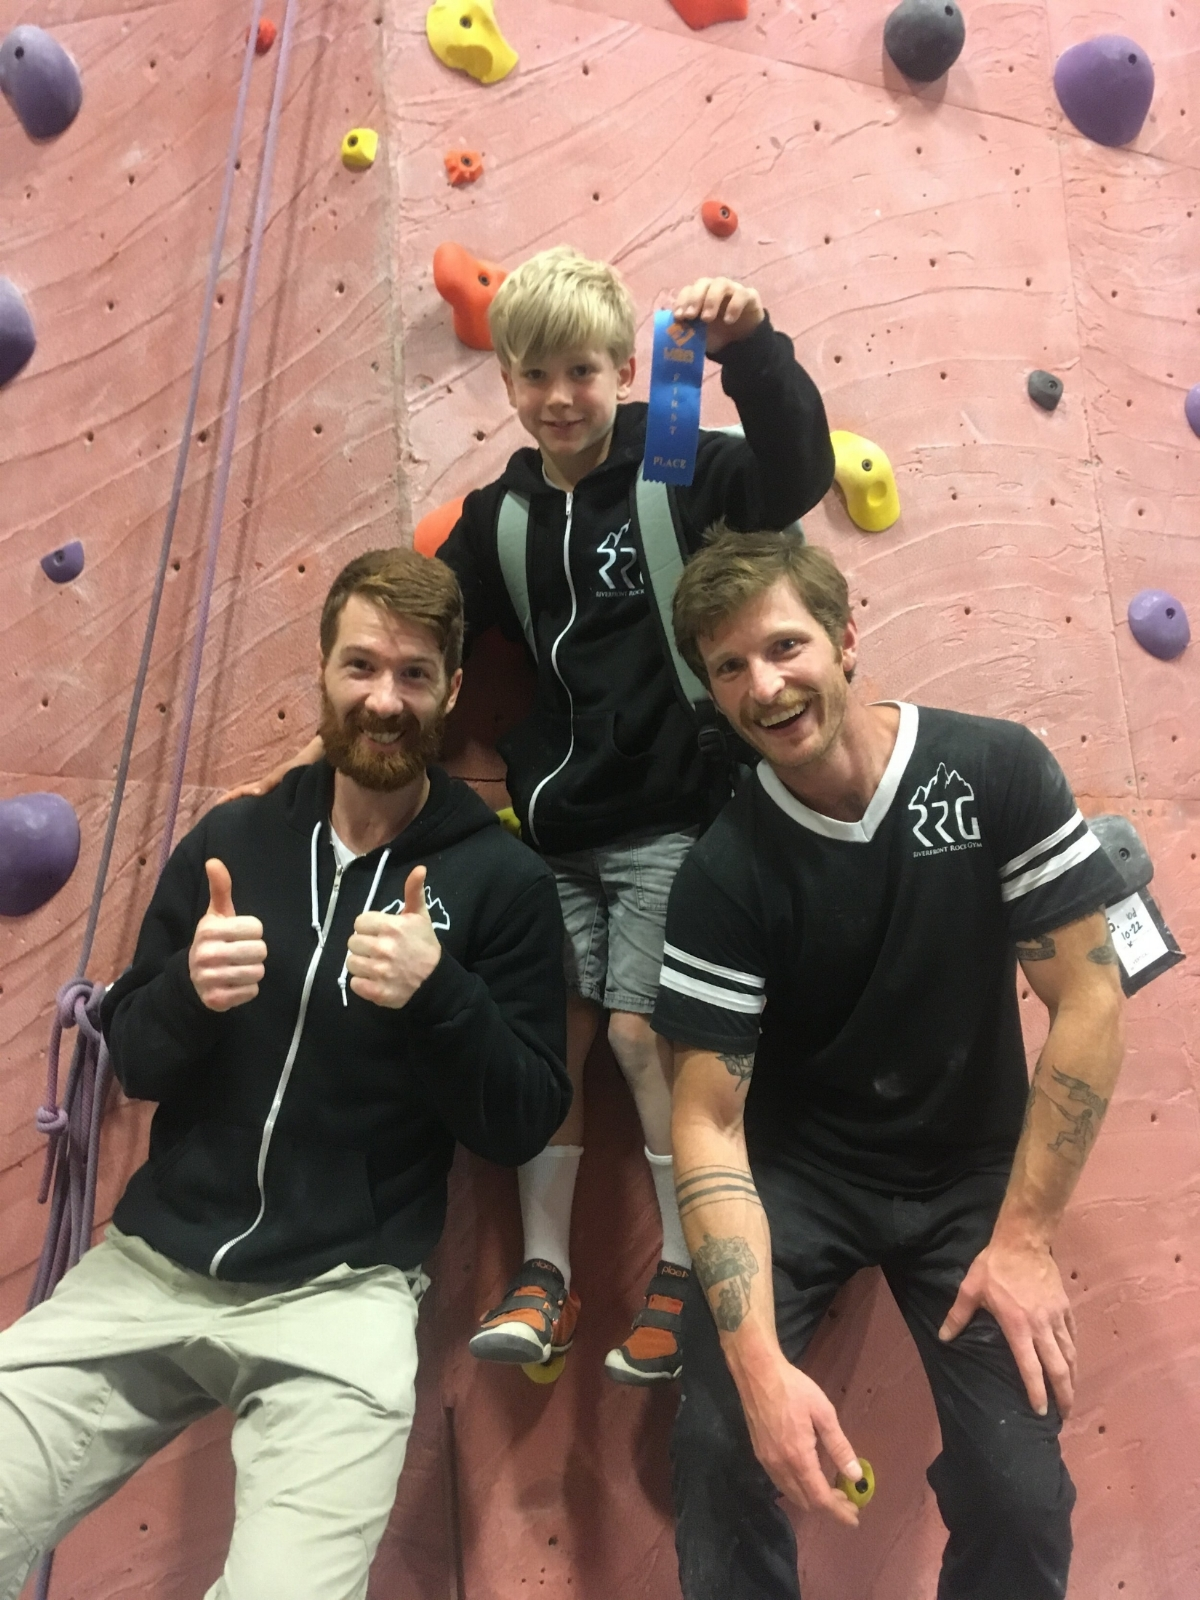 Coach Nate and head coach Drew ecstatic with Kian's 1st place in Youth Category D at the Vertical World Redmond competition.